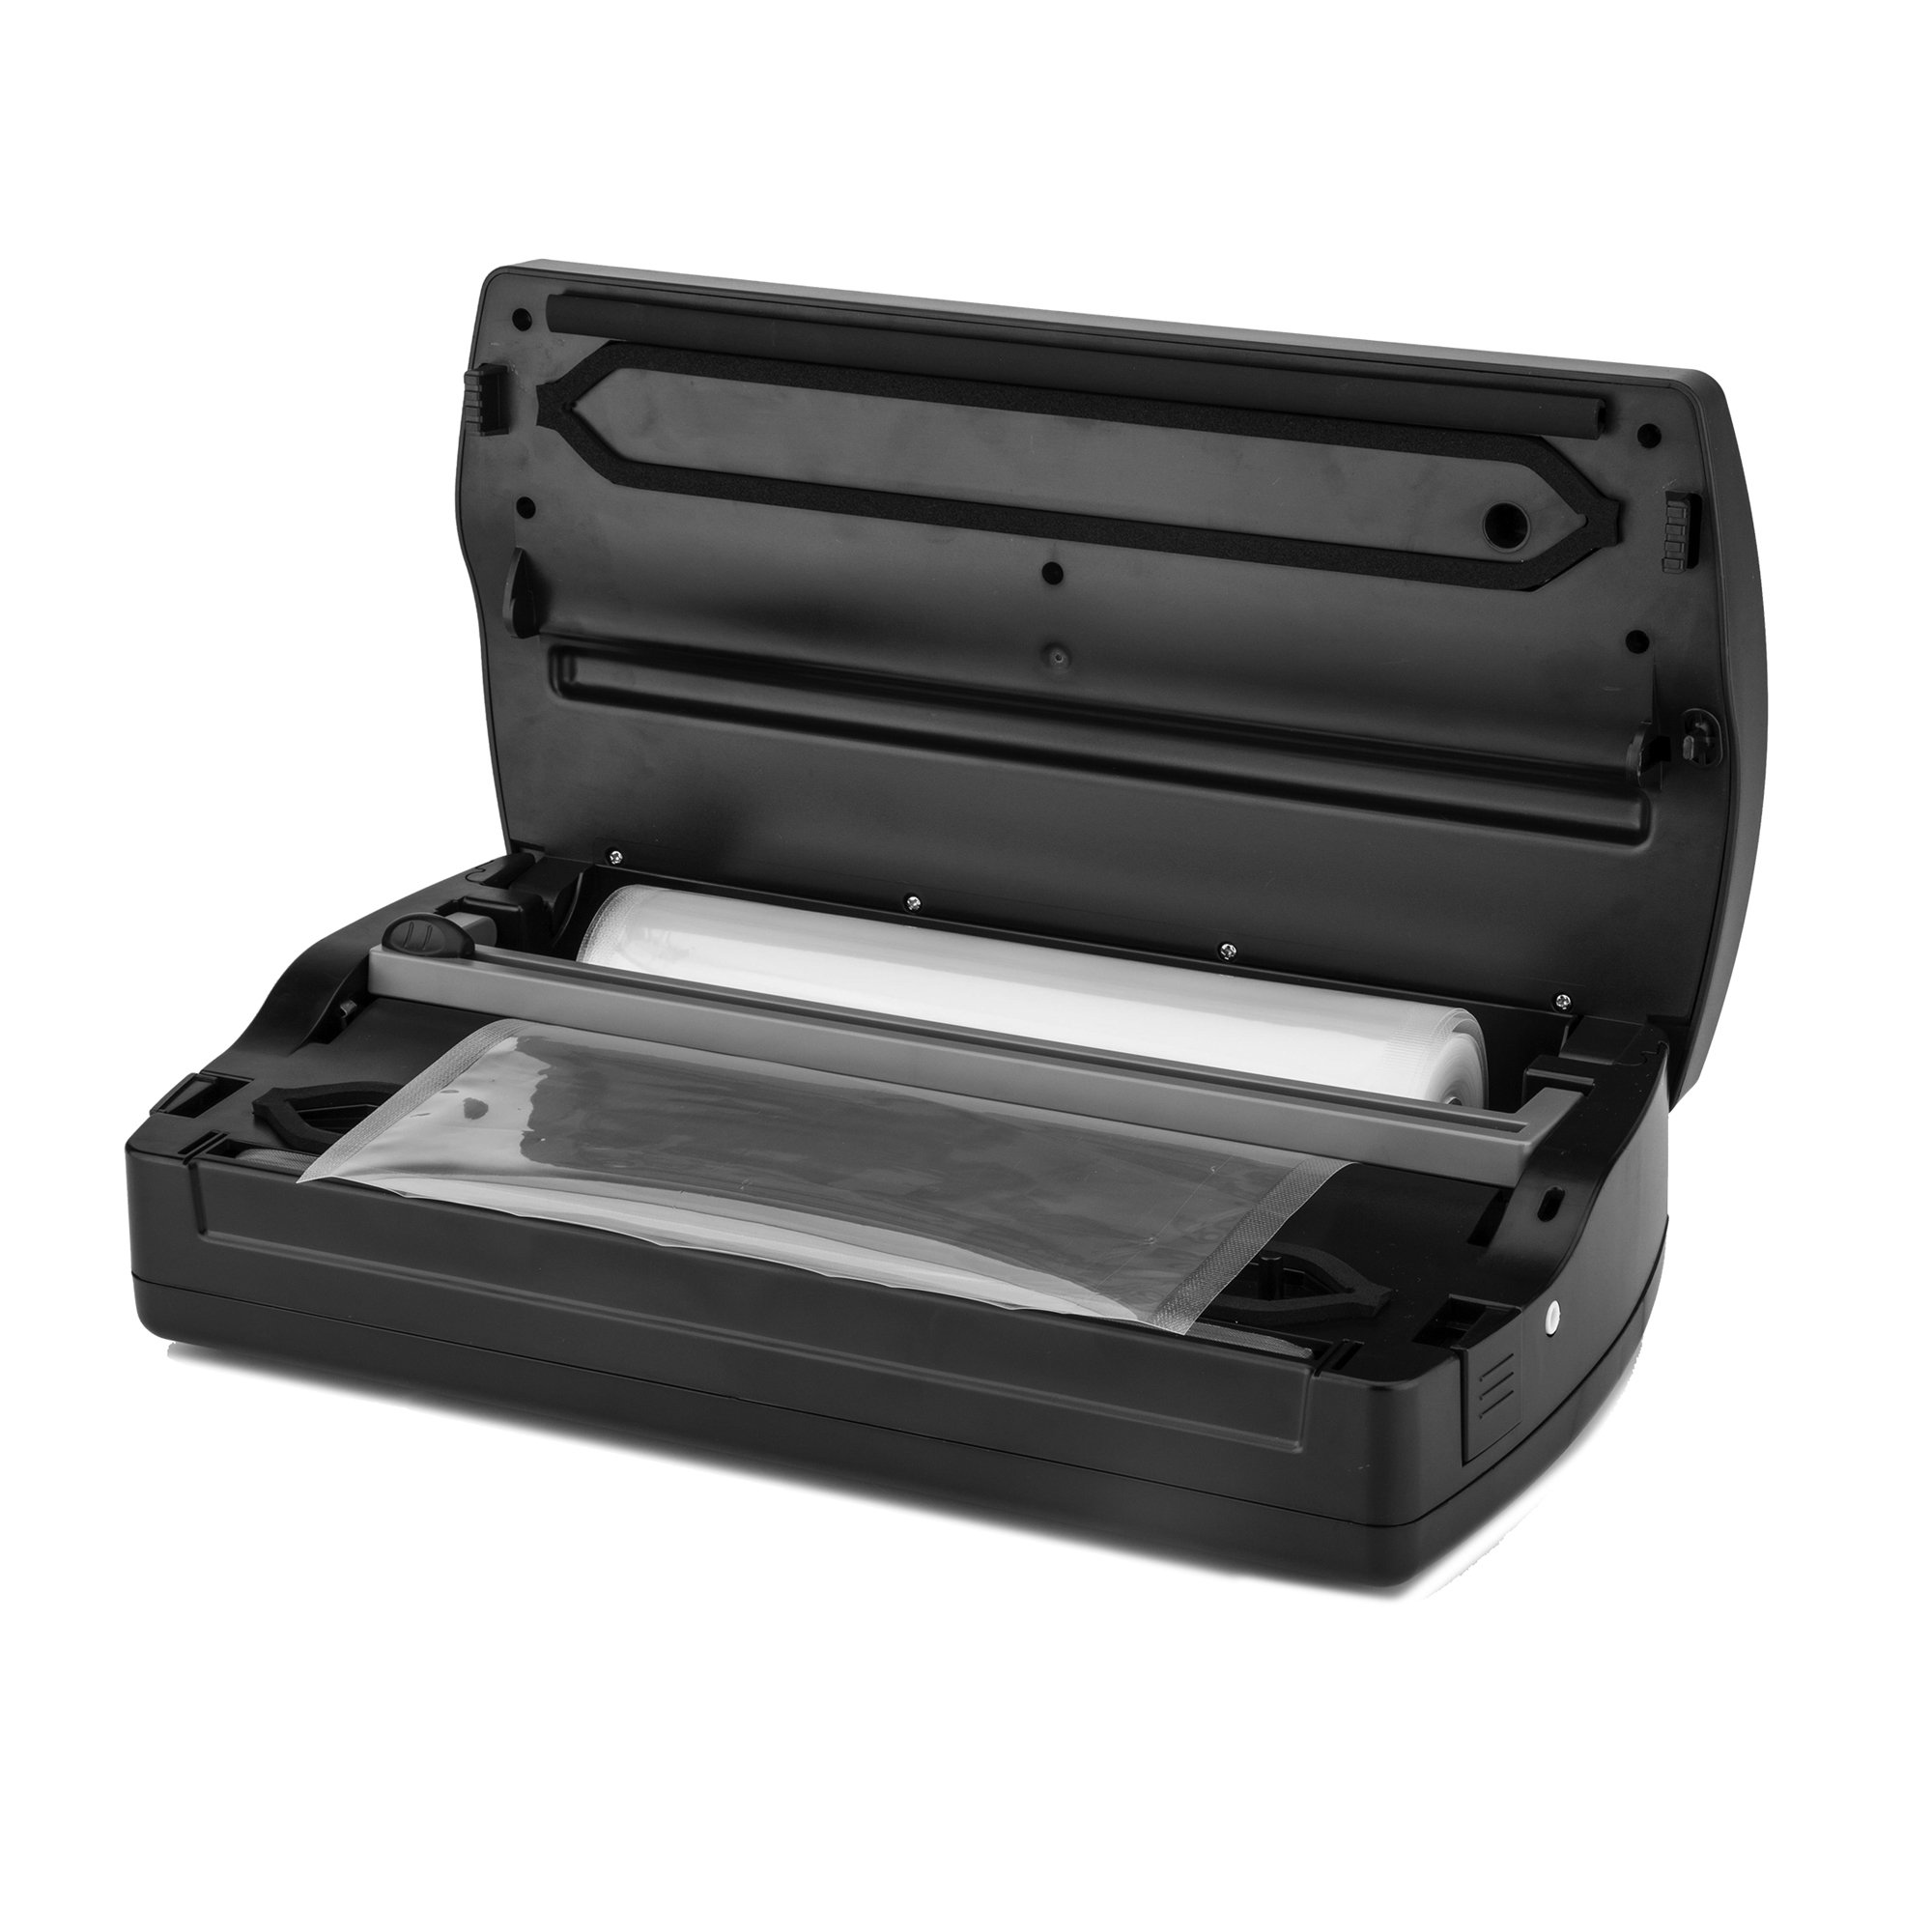 Excalibur EHVR12 Dual Pump Vacuum Sealer with Built-in Roll Holder Features Two Vacuum Modes and Time Settings with Pulse Function, 12-Inch, Black by Excalibur (Image #2)